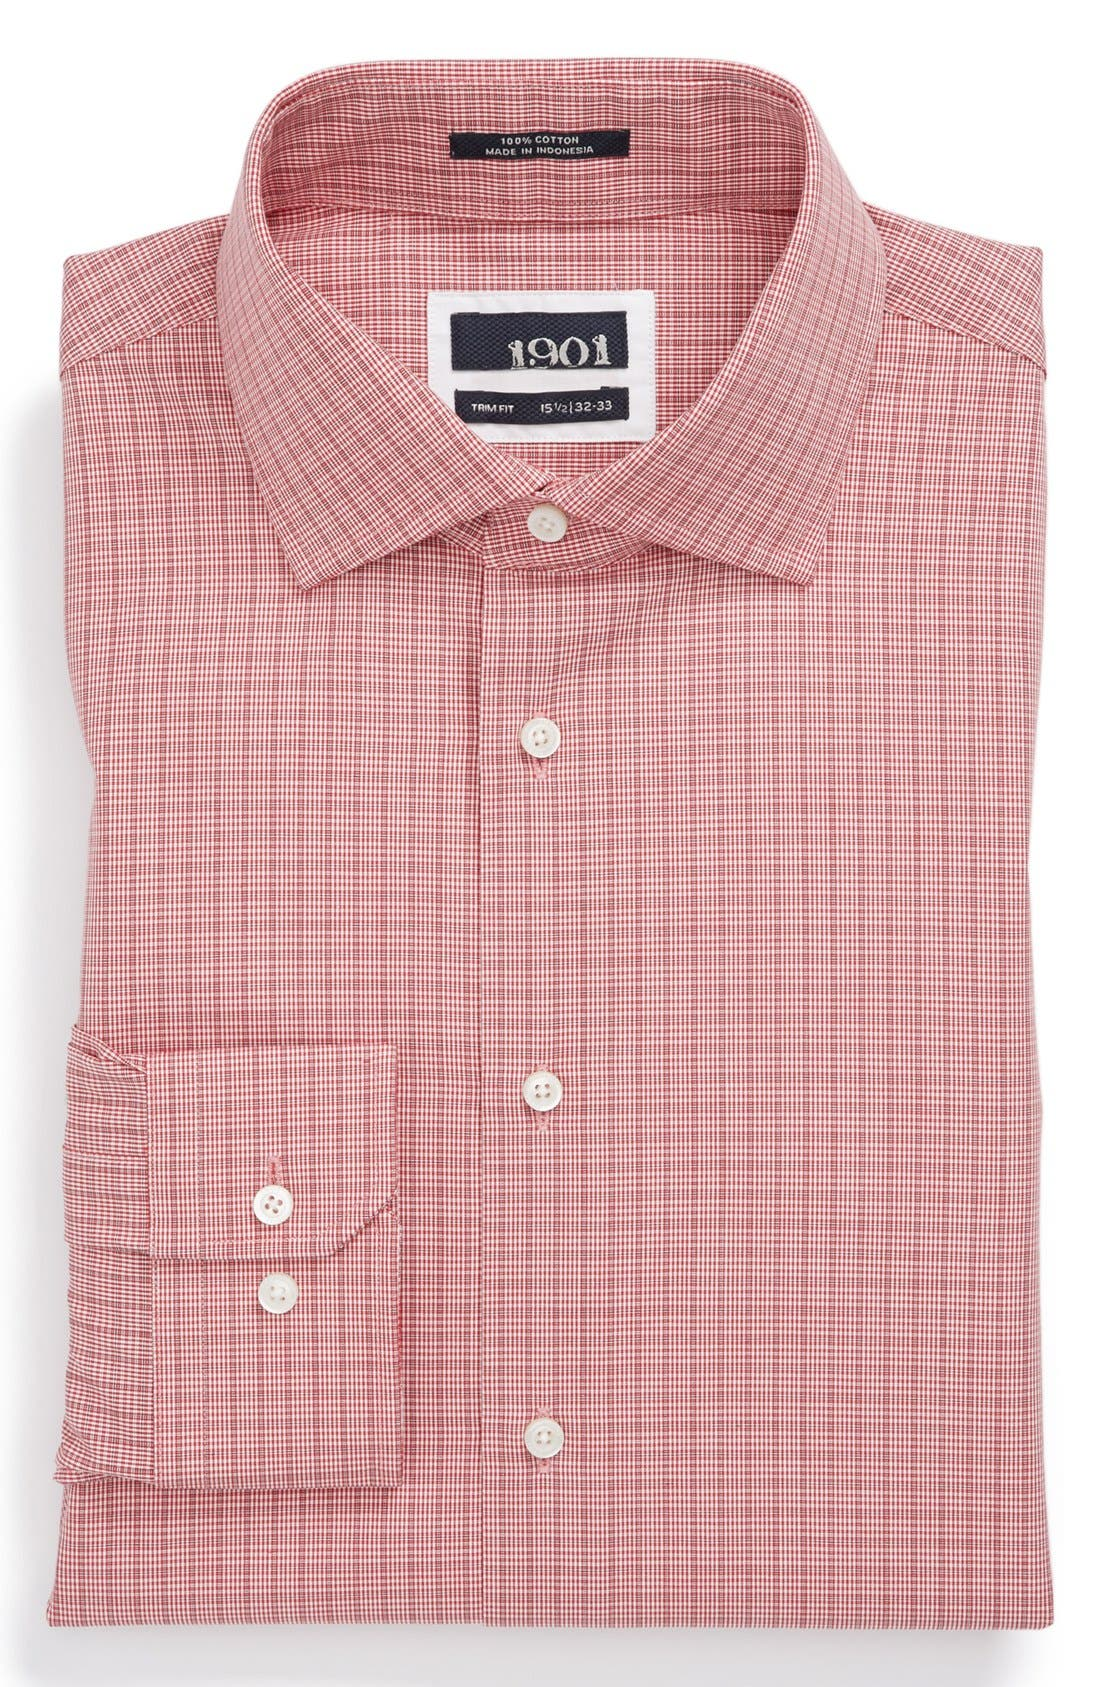 Main Image - 1901 Trim Fit Plaid Dress Shirt